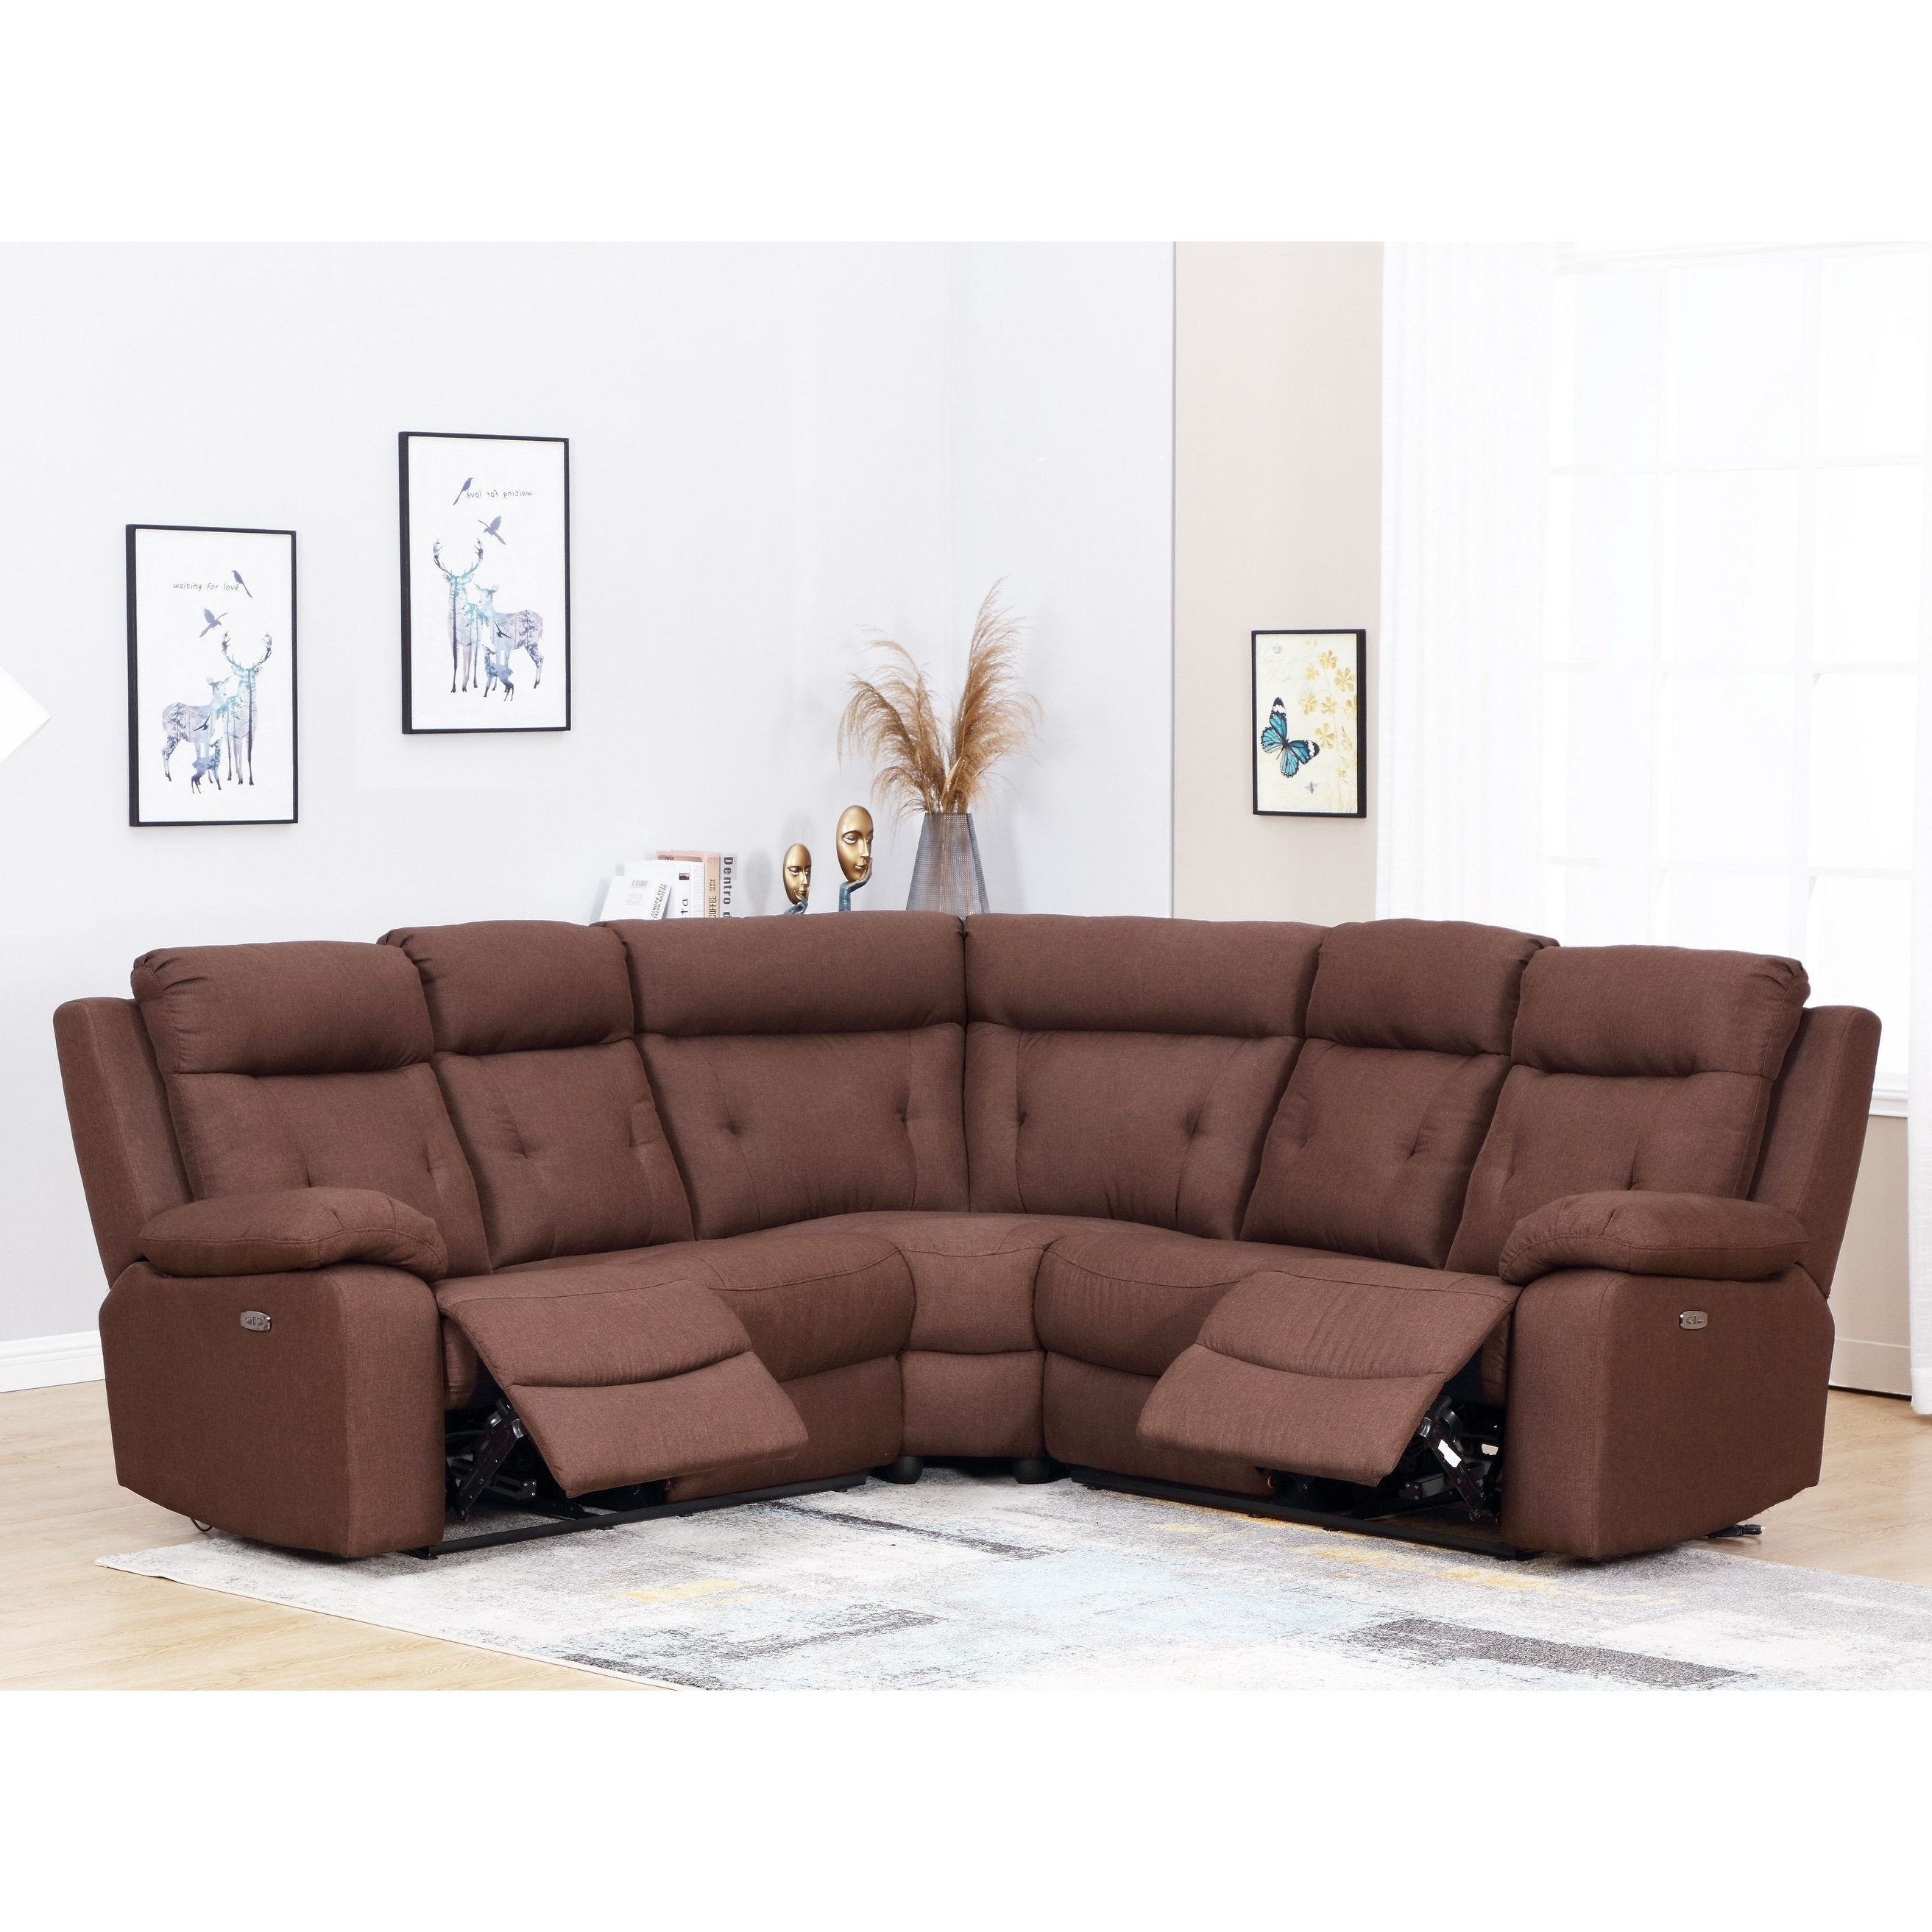 Shop Brown Microfiber Upholstered Power Reclining Sectional On